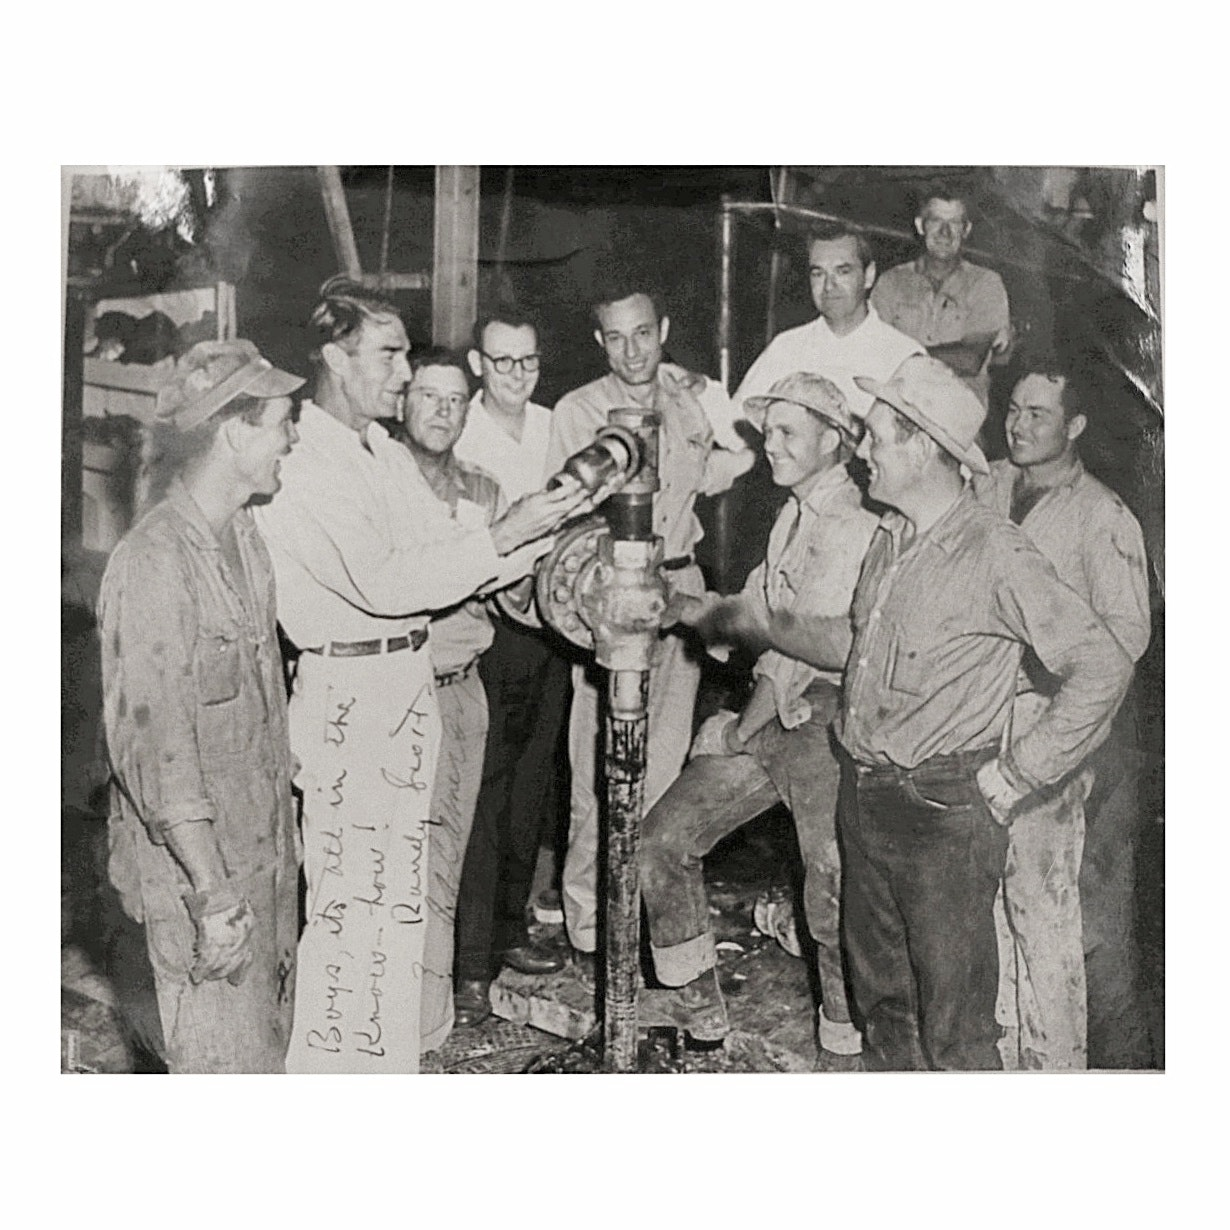 Vintage Black and White Photograph of Oil Rig Workers Signed by Randolph Scott